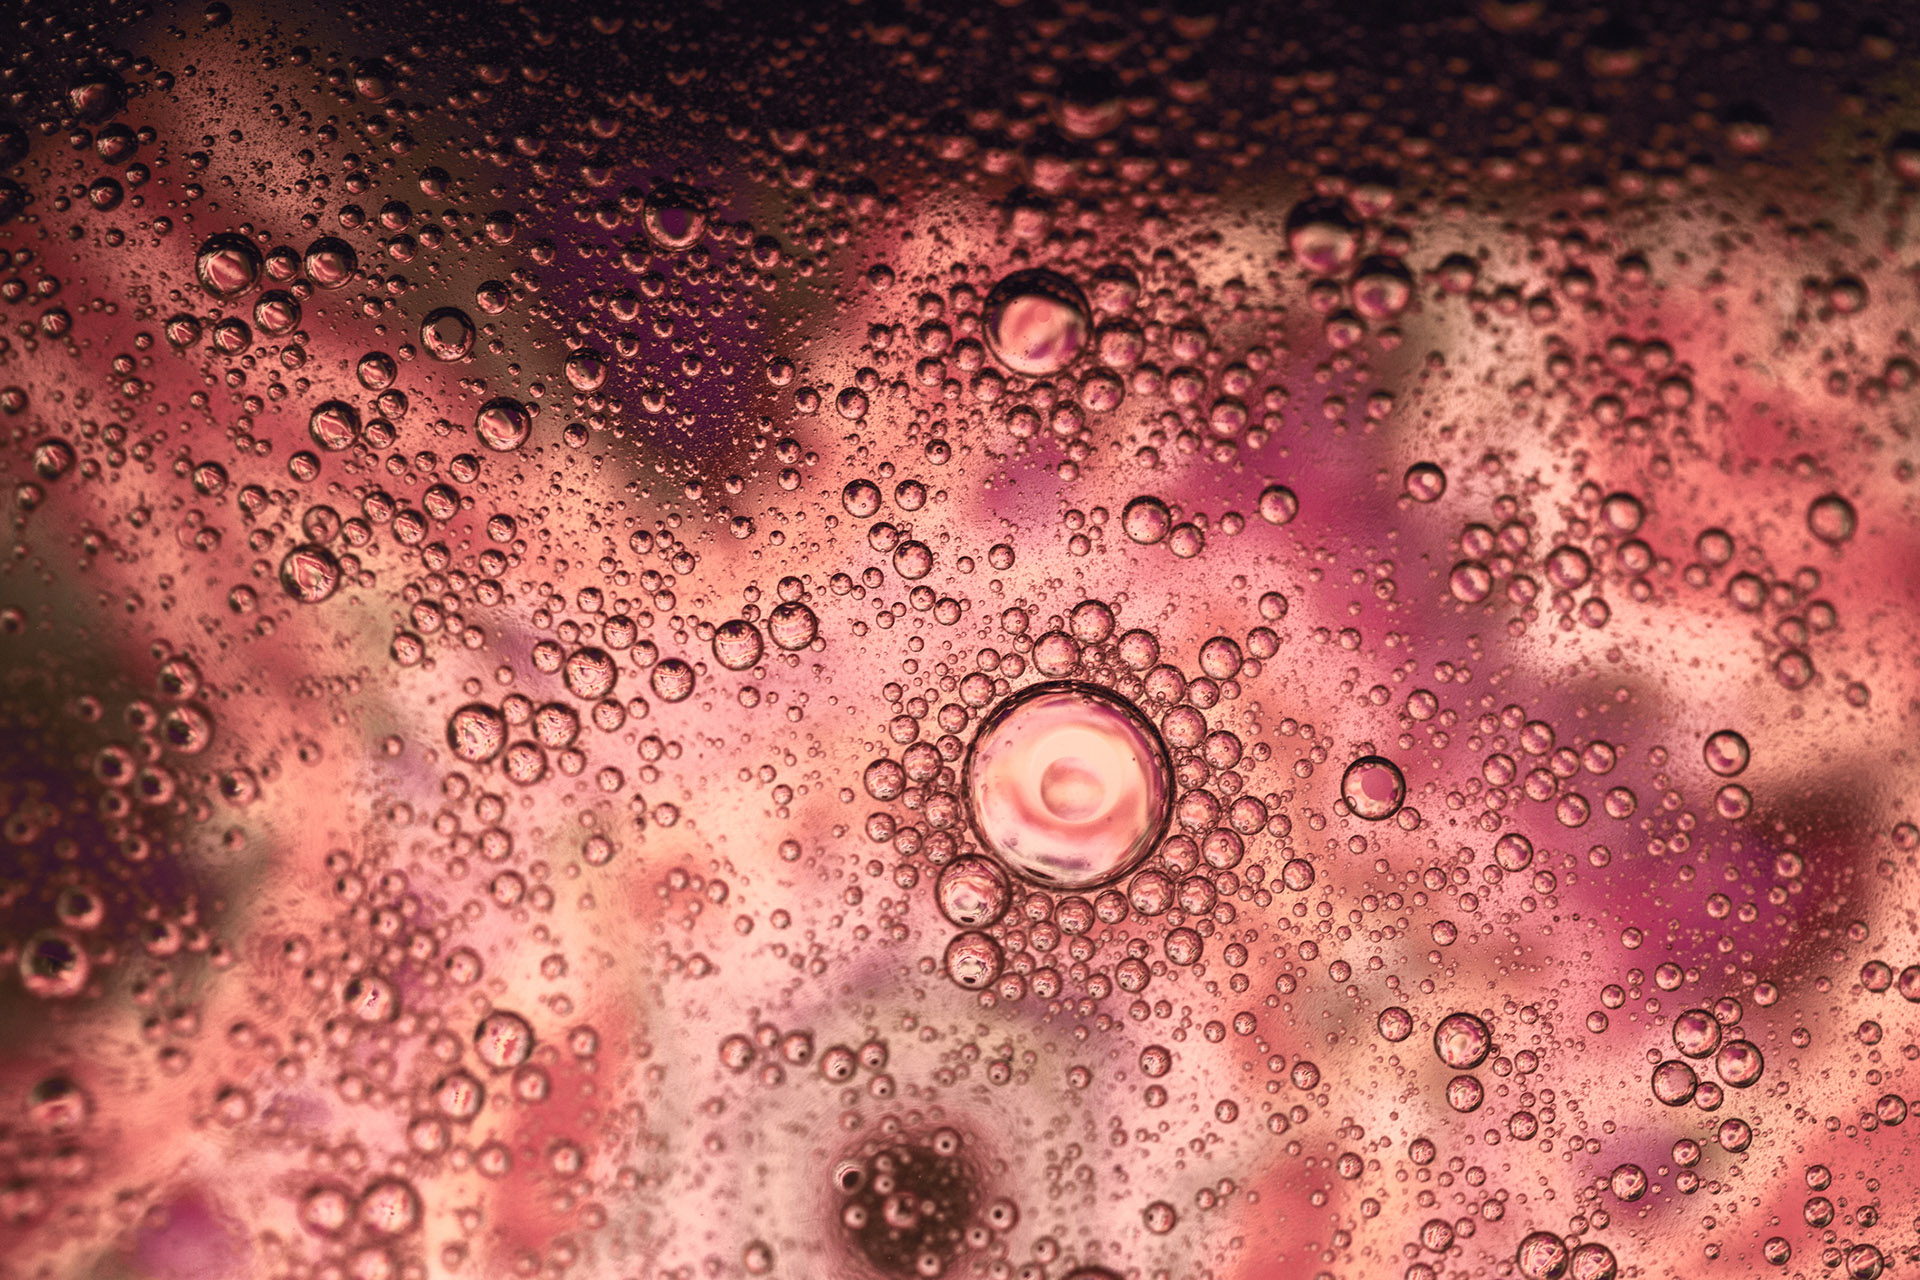 Close-up of bubbles in sparkling wine